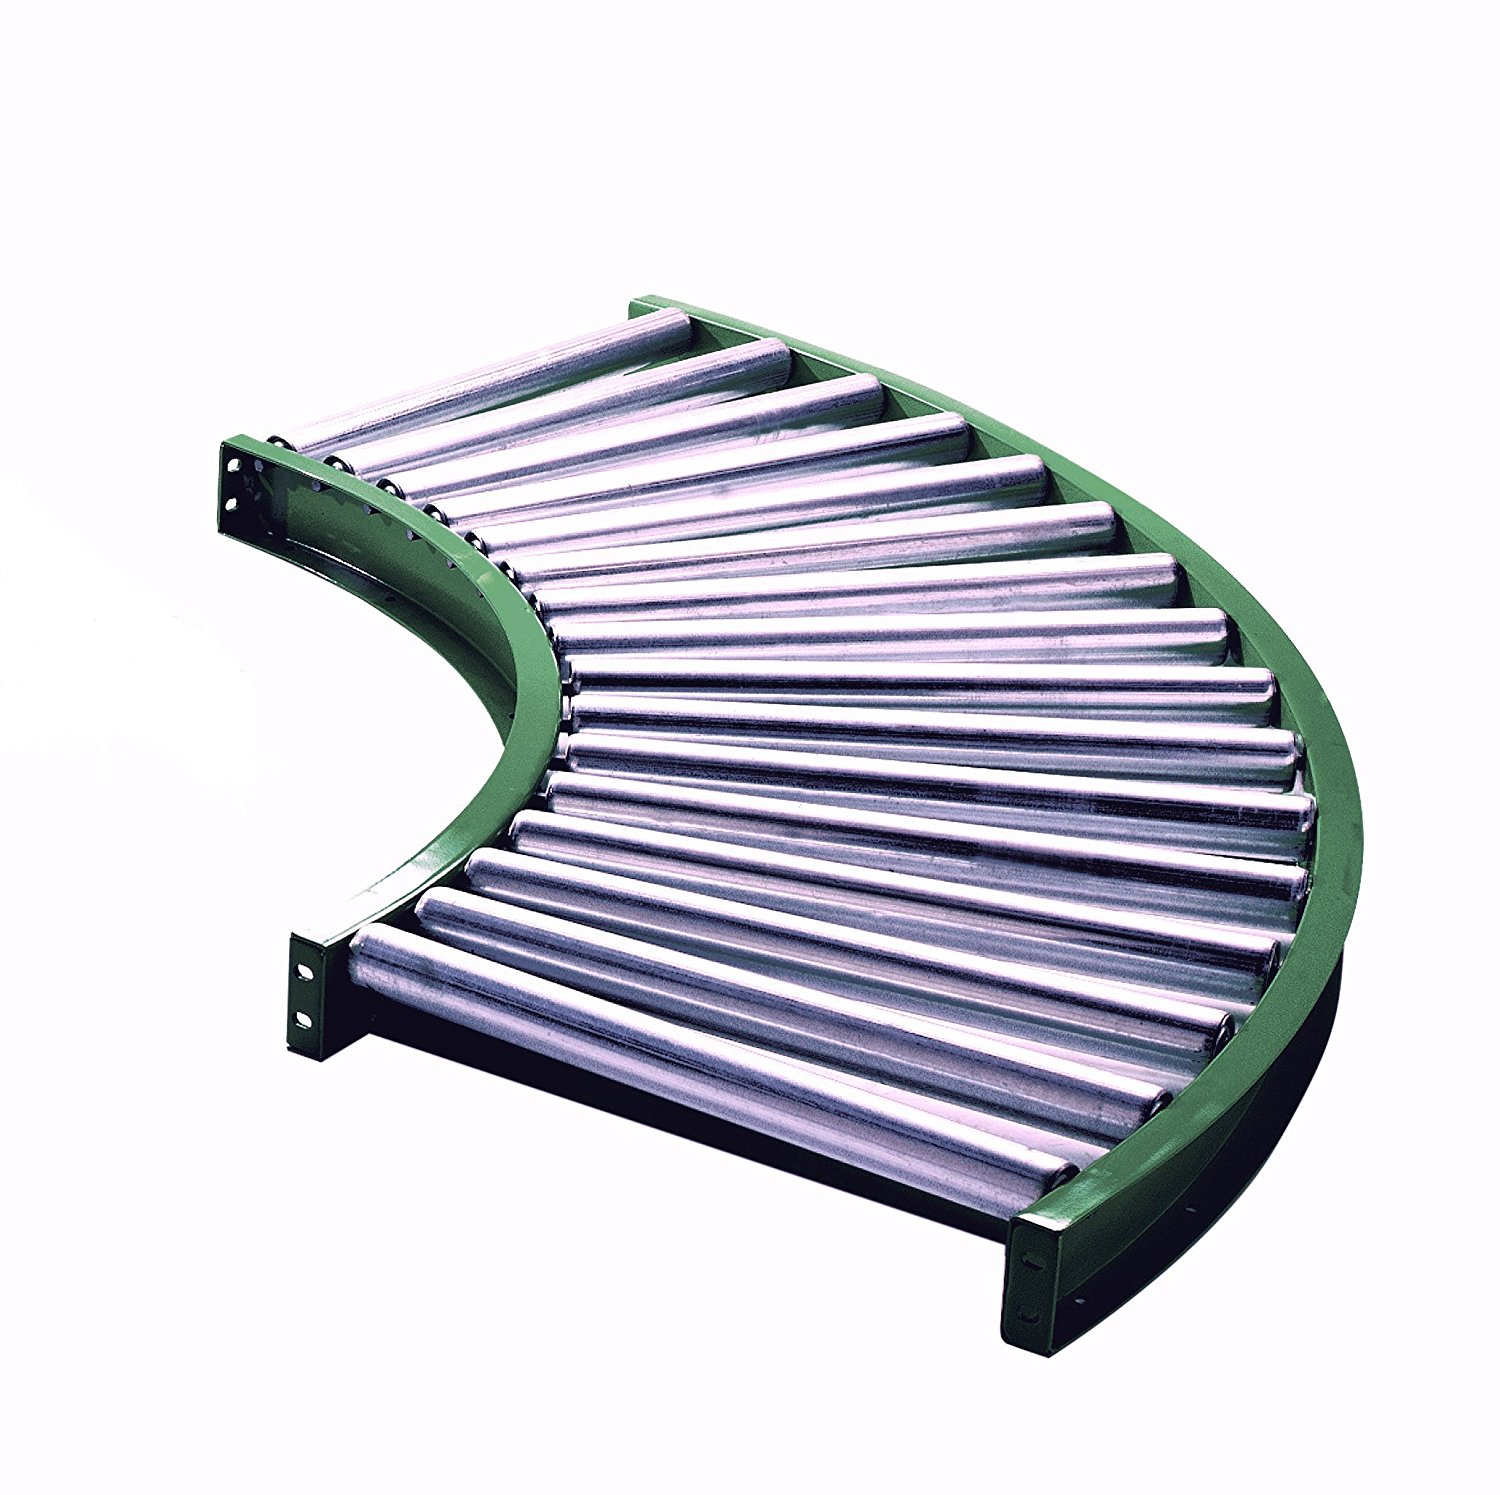 """Ashland Conveyor A10F90KG03B16 Painted Galvanized Steel Roller Conveyor with 3.5"""" Channel, 90 Degree Curve, 3"""" Axle Centers, 16"""" Between Frame, 1.9"""" O.D x 16 Gauge, 47.375"""" Length, 18.75"""" Width, Ashland Green"""